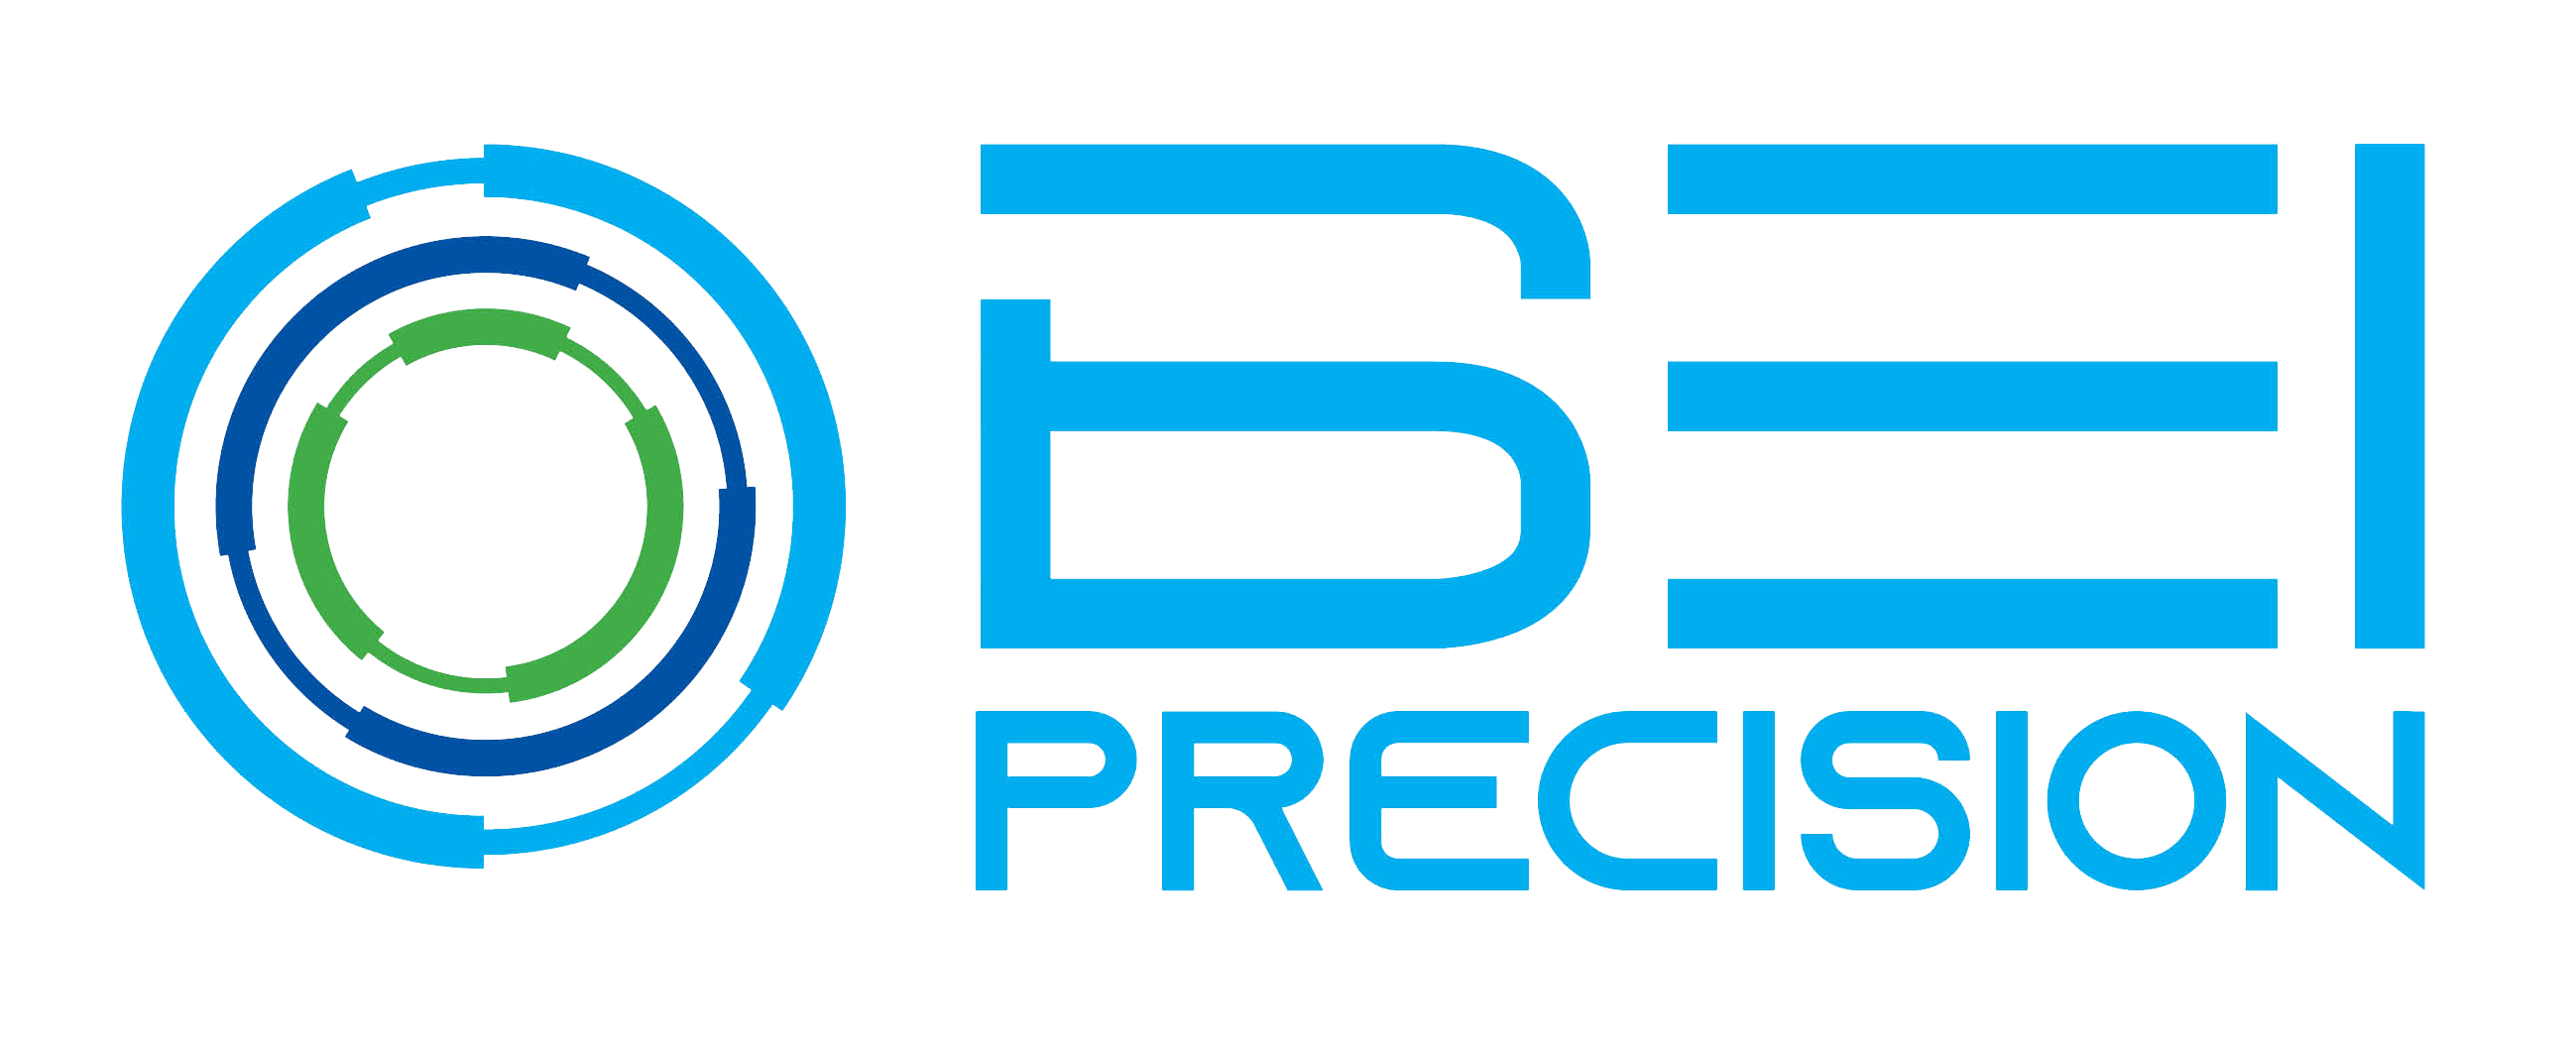 BEI Precision Announces Acquisition of Wenzel Associates, Inc., October 23 2019